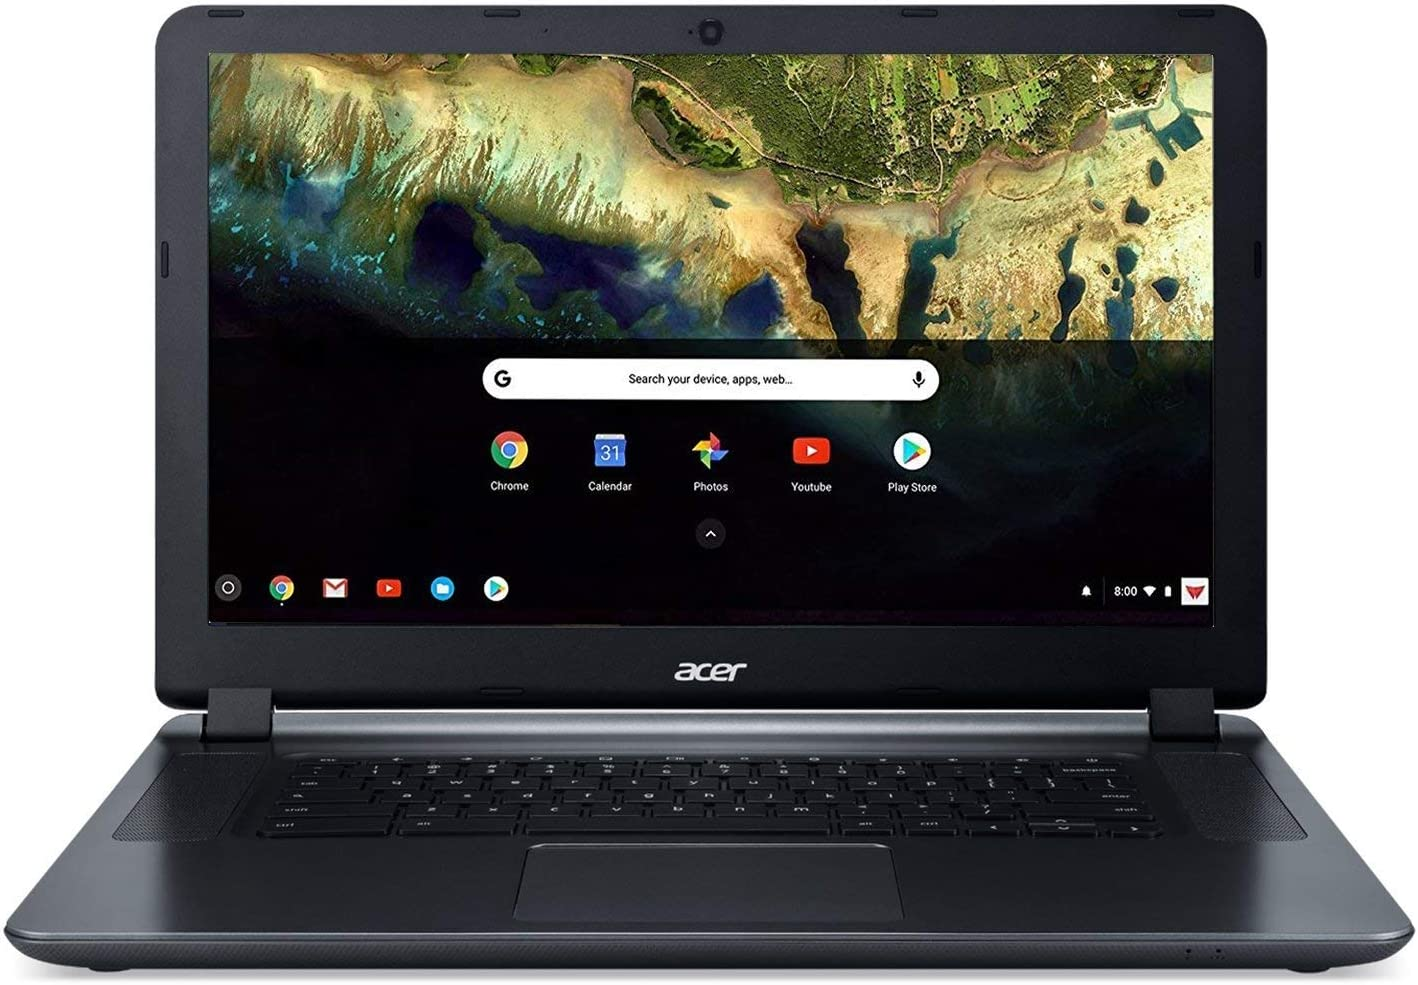 Acer Chromebook 15 CB3-532-C4ZZ, Celeron N3060, 15.6in HD, 4GB LPDDR3, 32GB Storage, Google Chrome (Renewed)